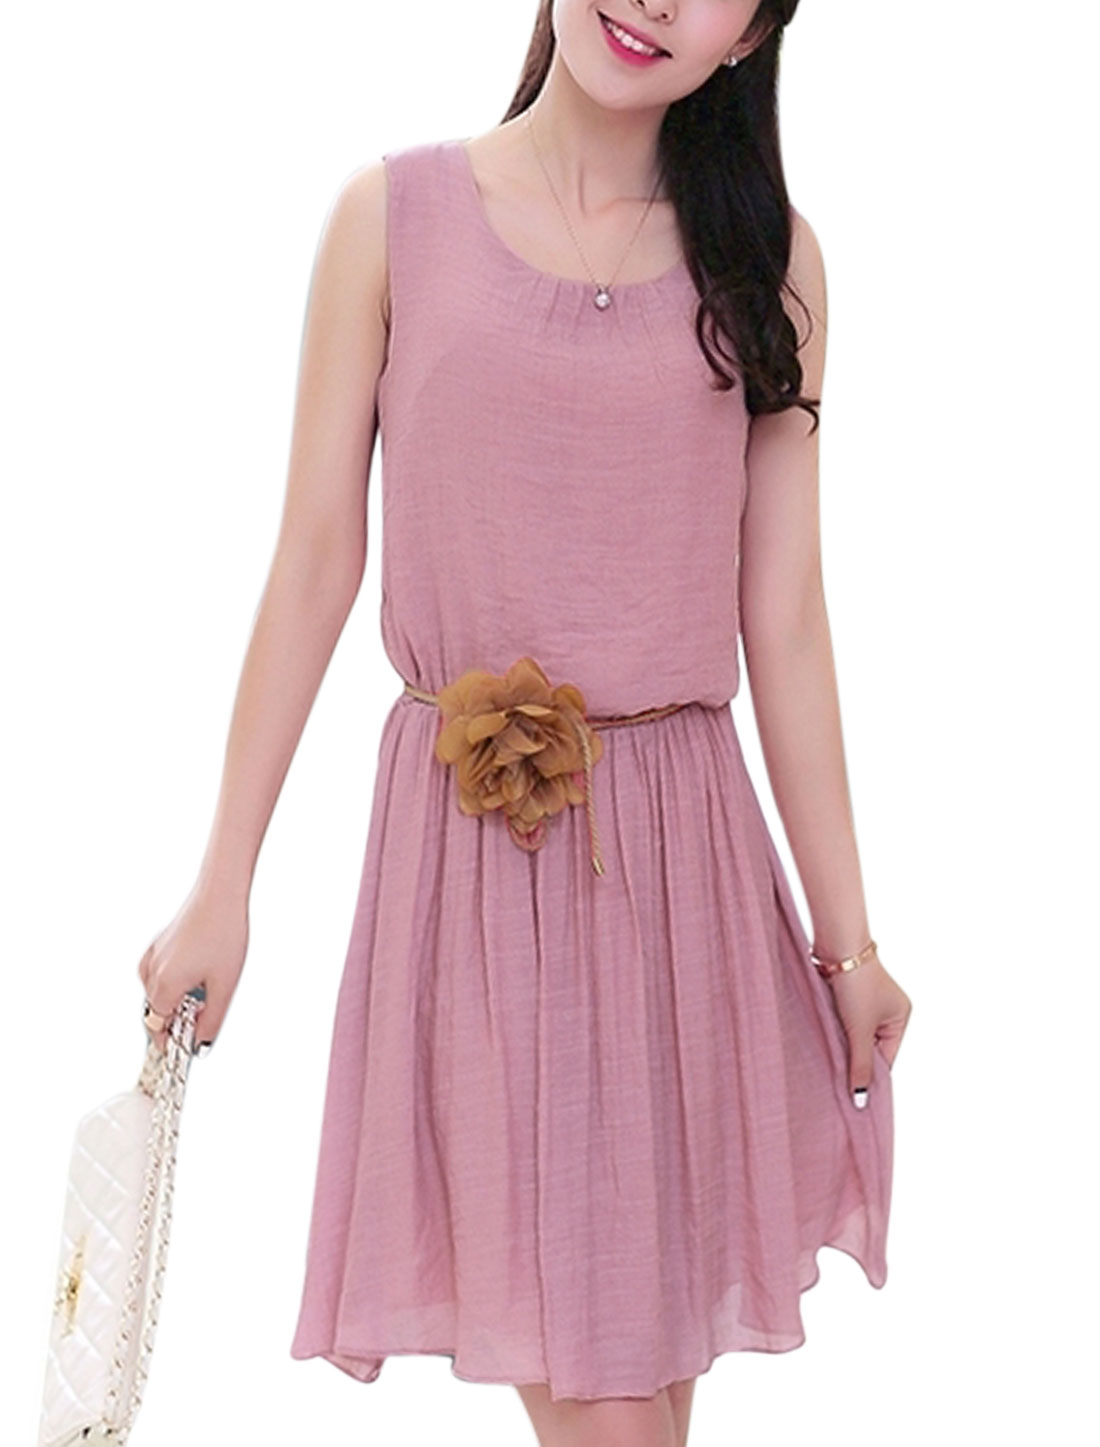 Lady Tie Button Closure Split Back Stretchy Waist Short Dress Pale Pink M